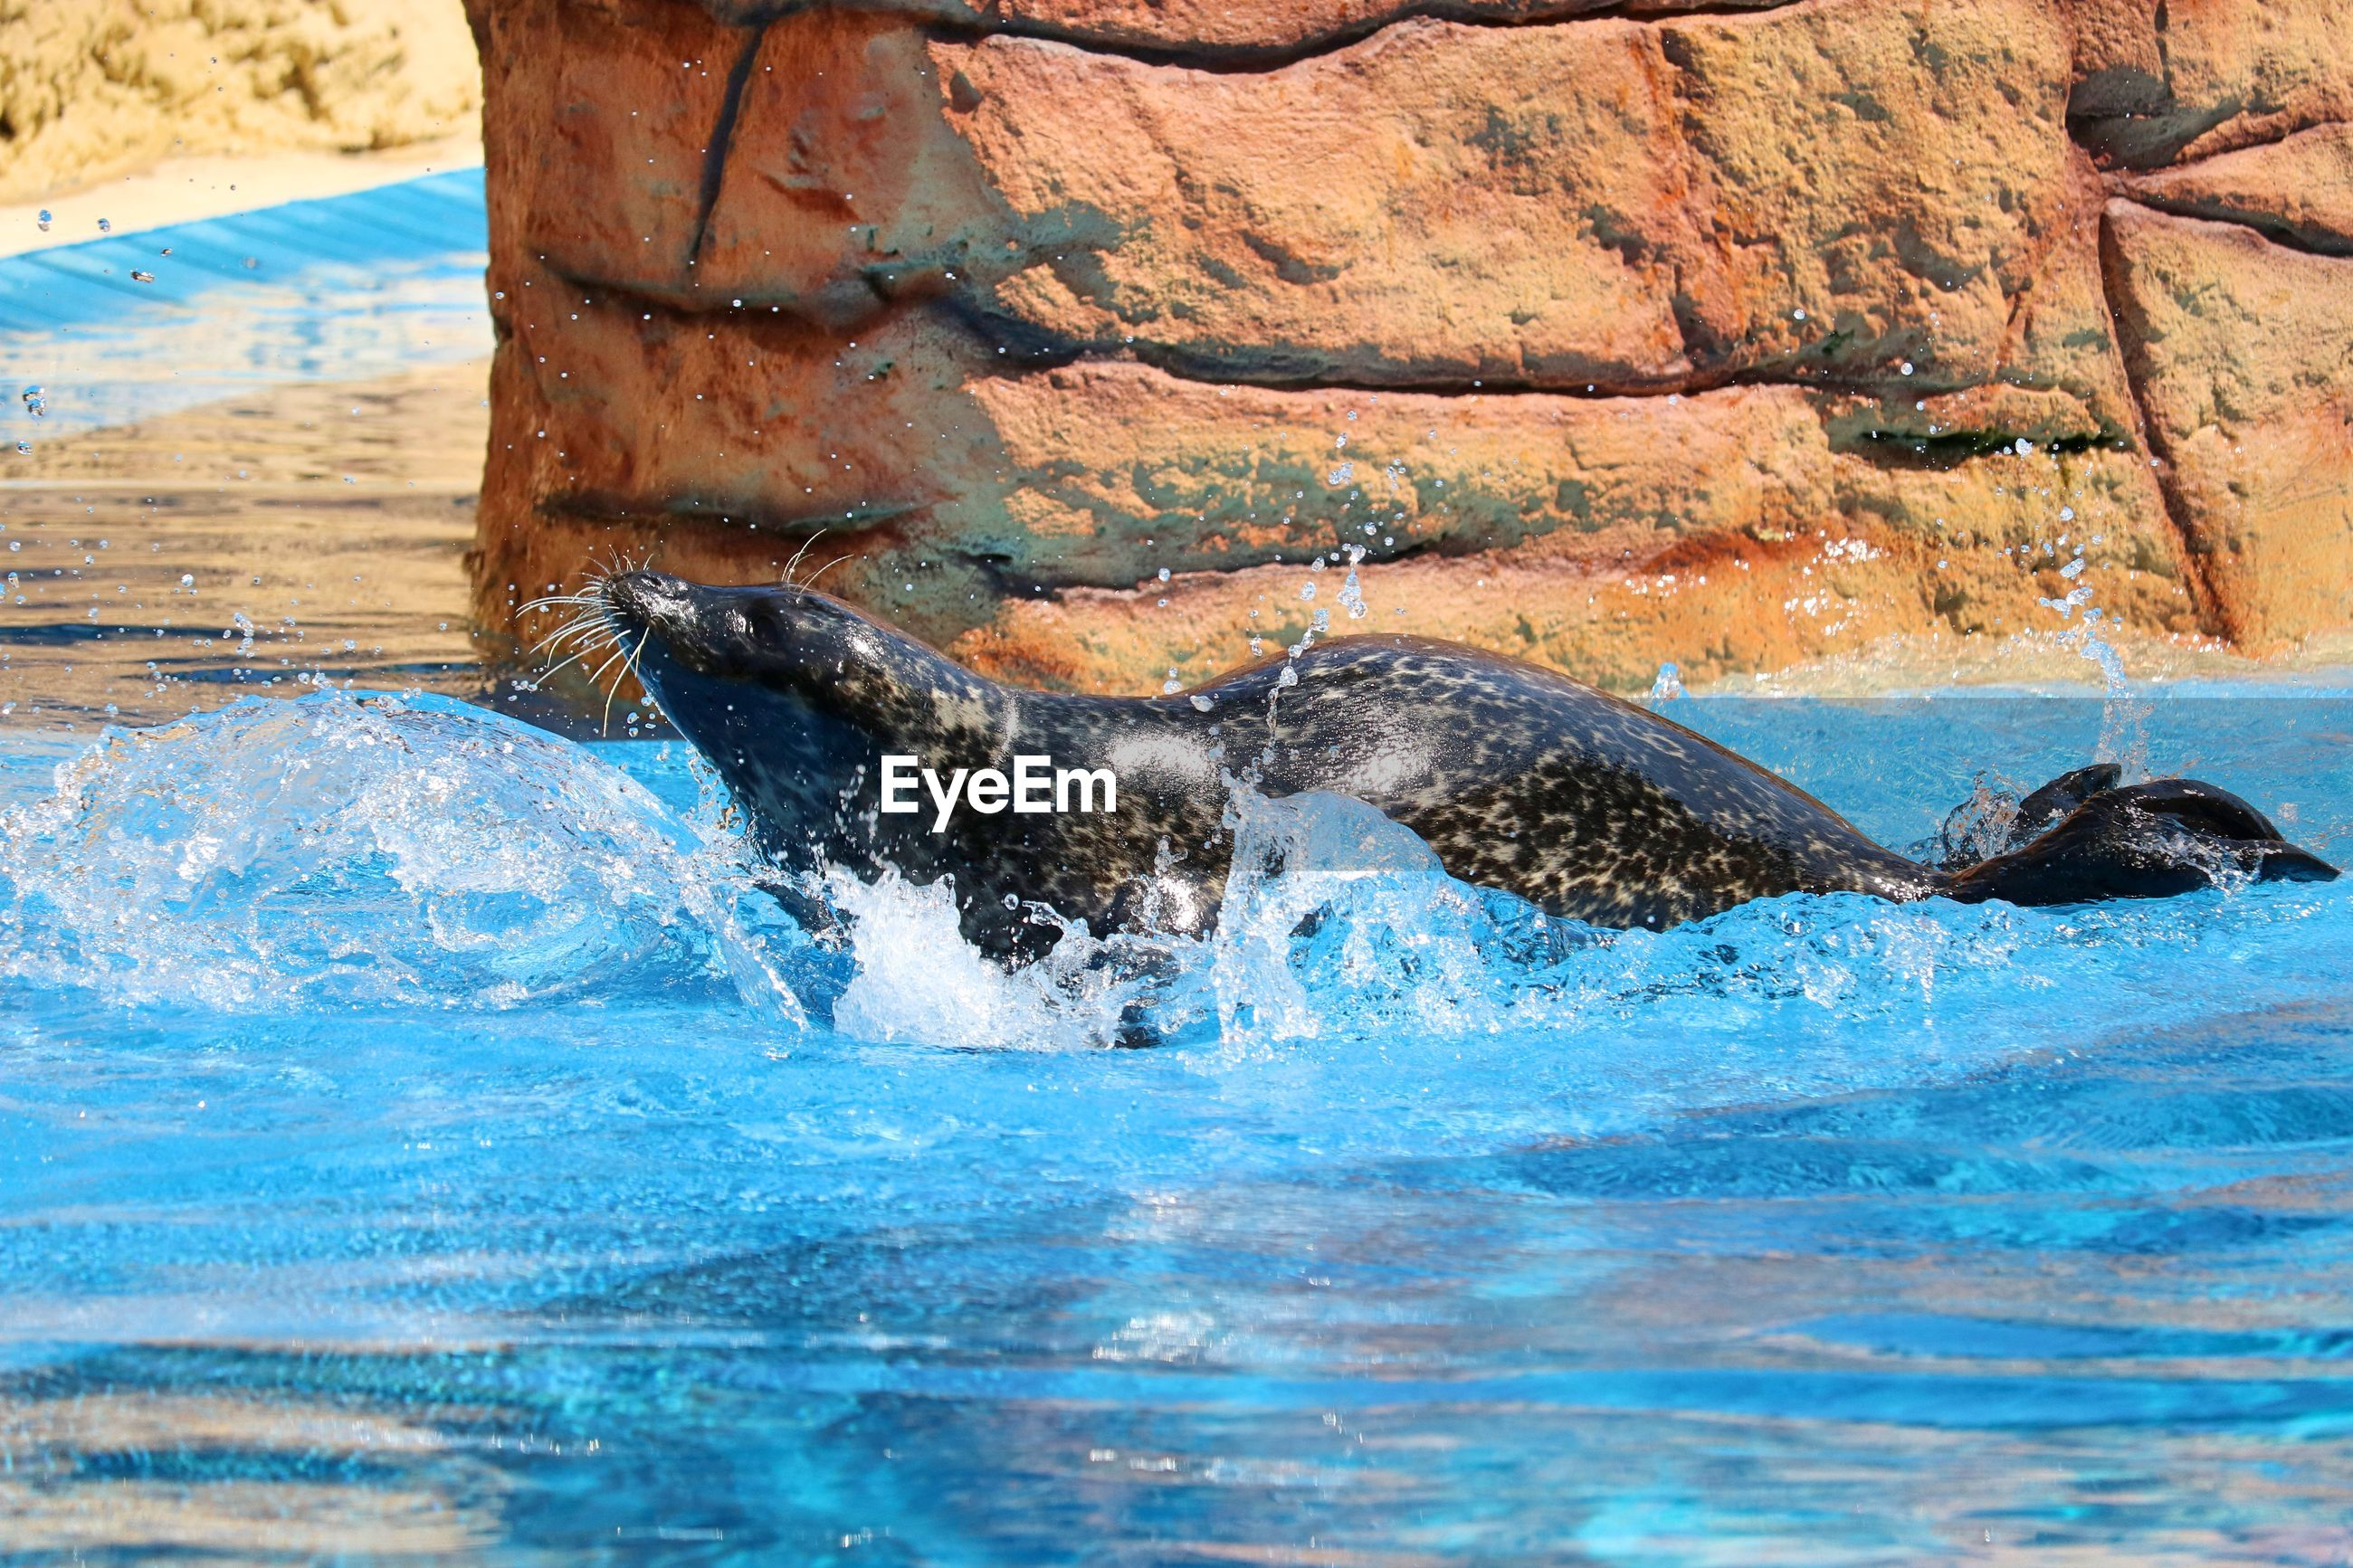 View of seal in swimming pool